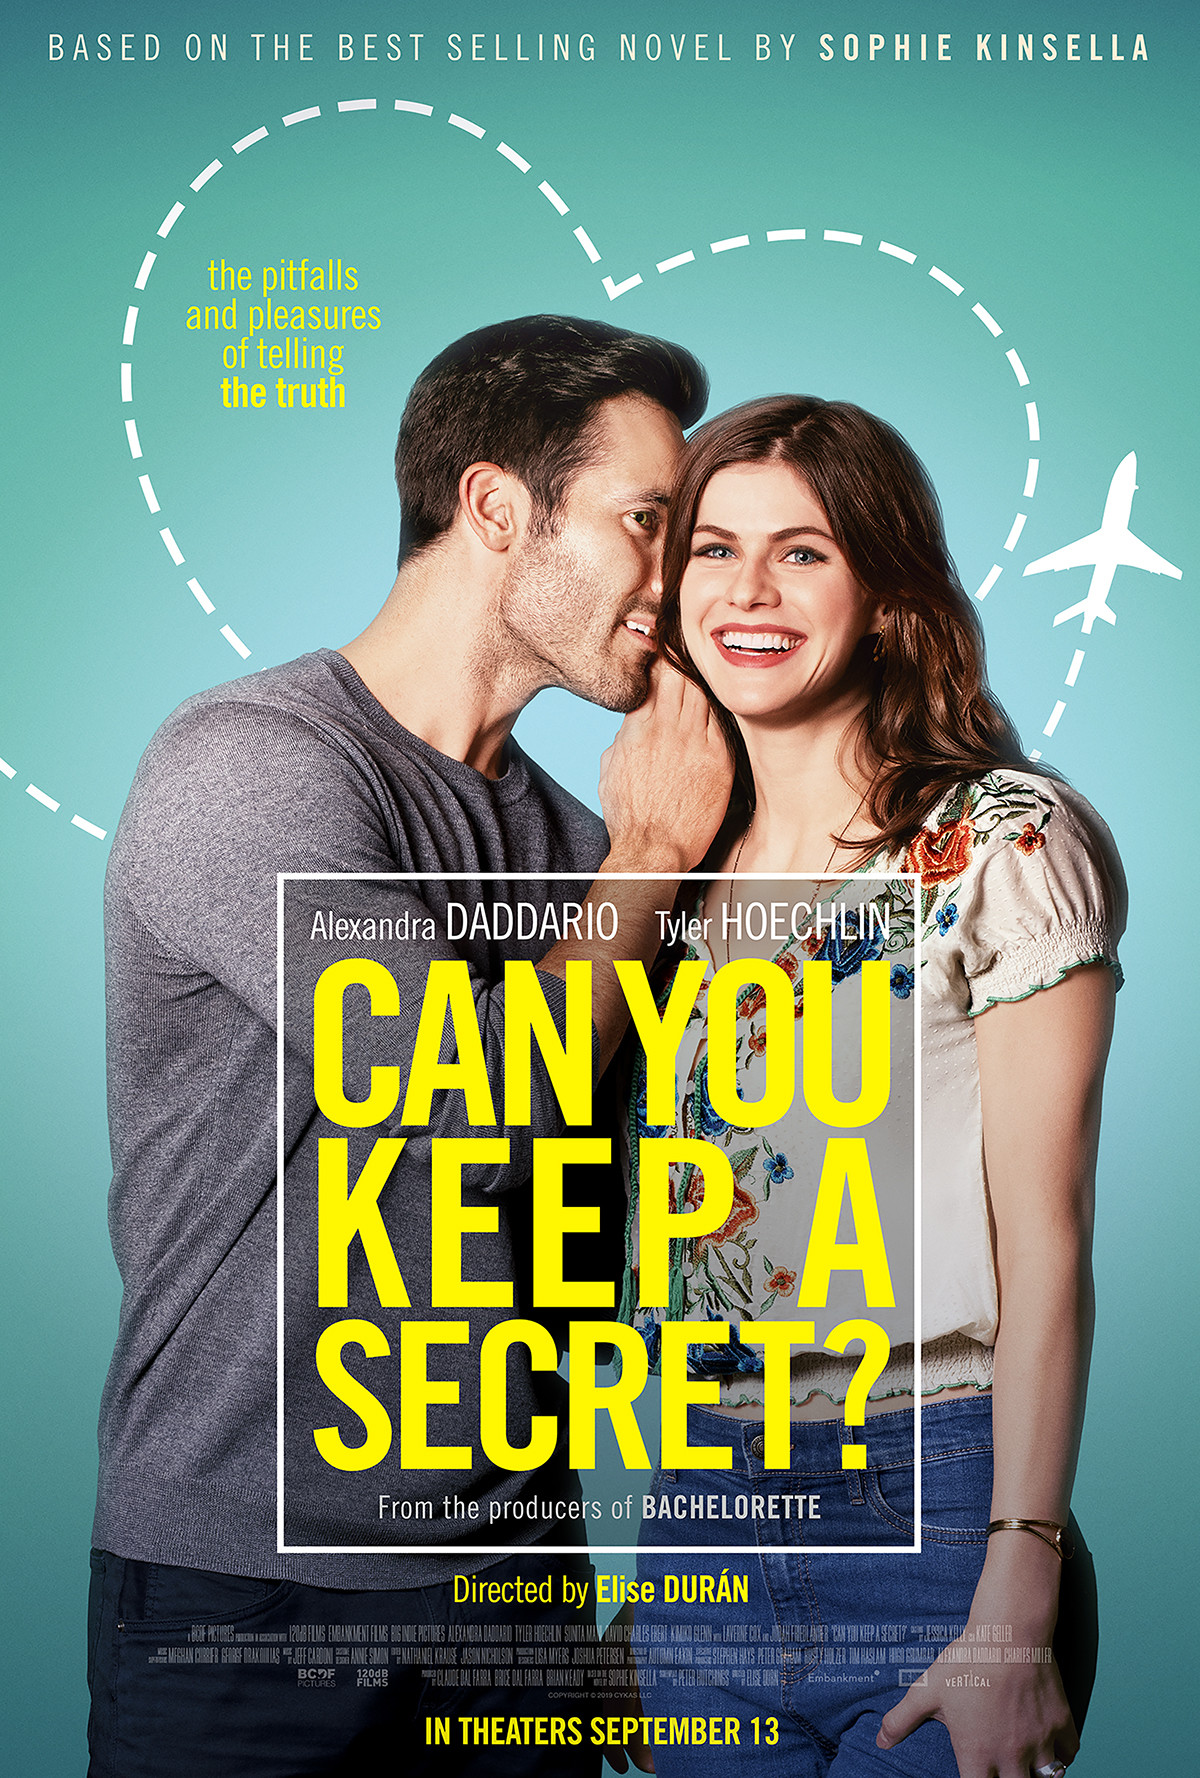 Stiahni si HD Filmy Dokazes udrzet tajemstvi? / Can You Keep a Secret? (2019)(CZ/EN)[WebRip][1080p] = CSFD 53%